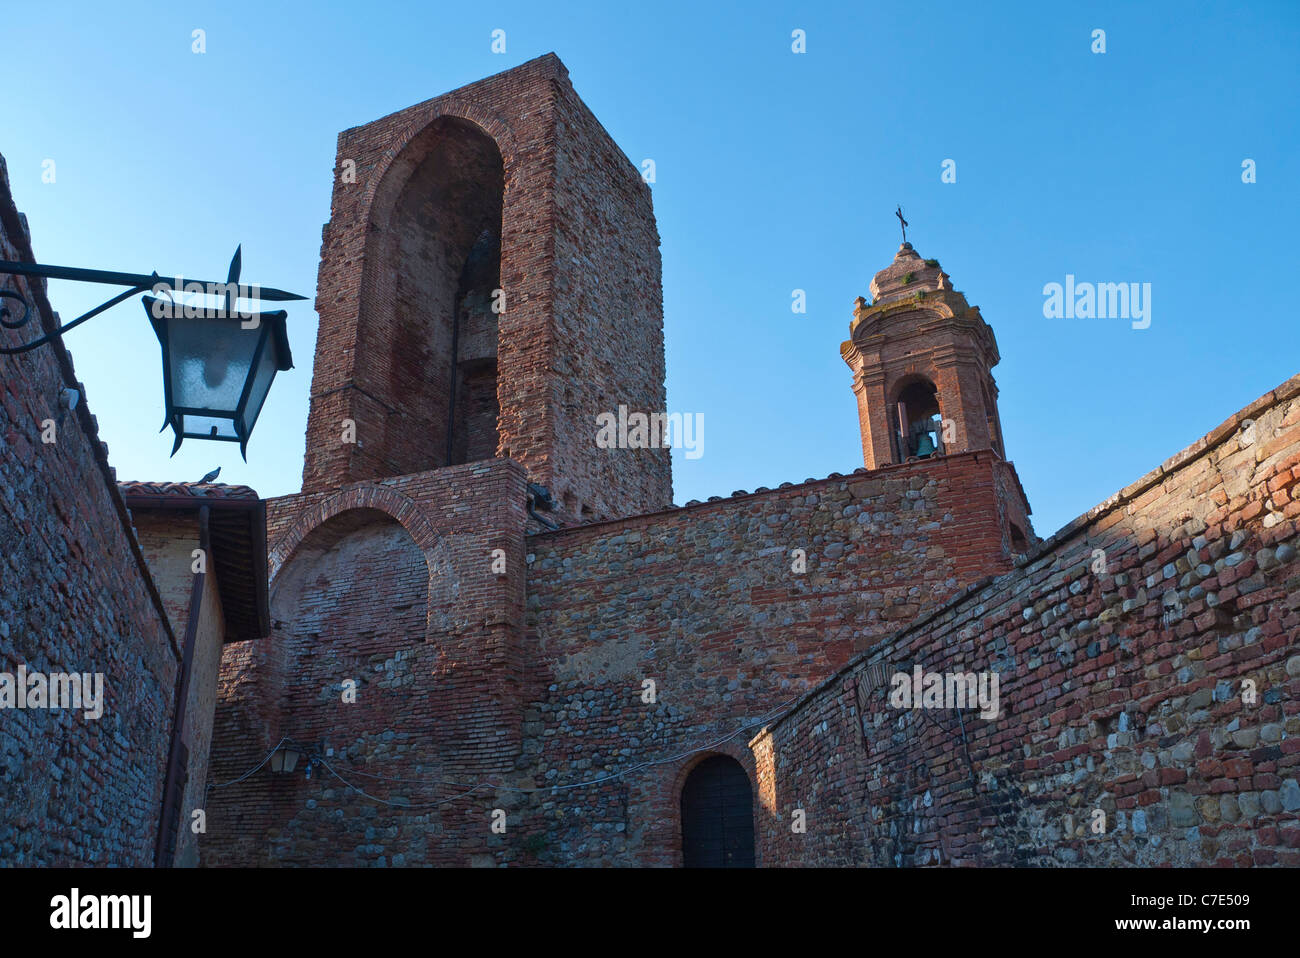 Exterior image of an ancient bell tower building in the medieval walled Umbrian town of Citta della Pieve, Italy. - Stock Image